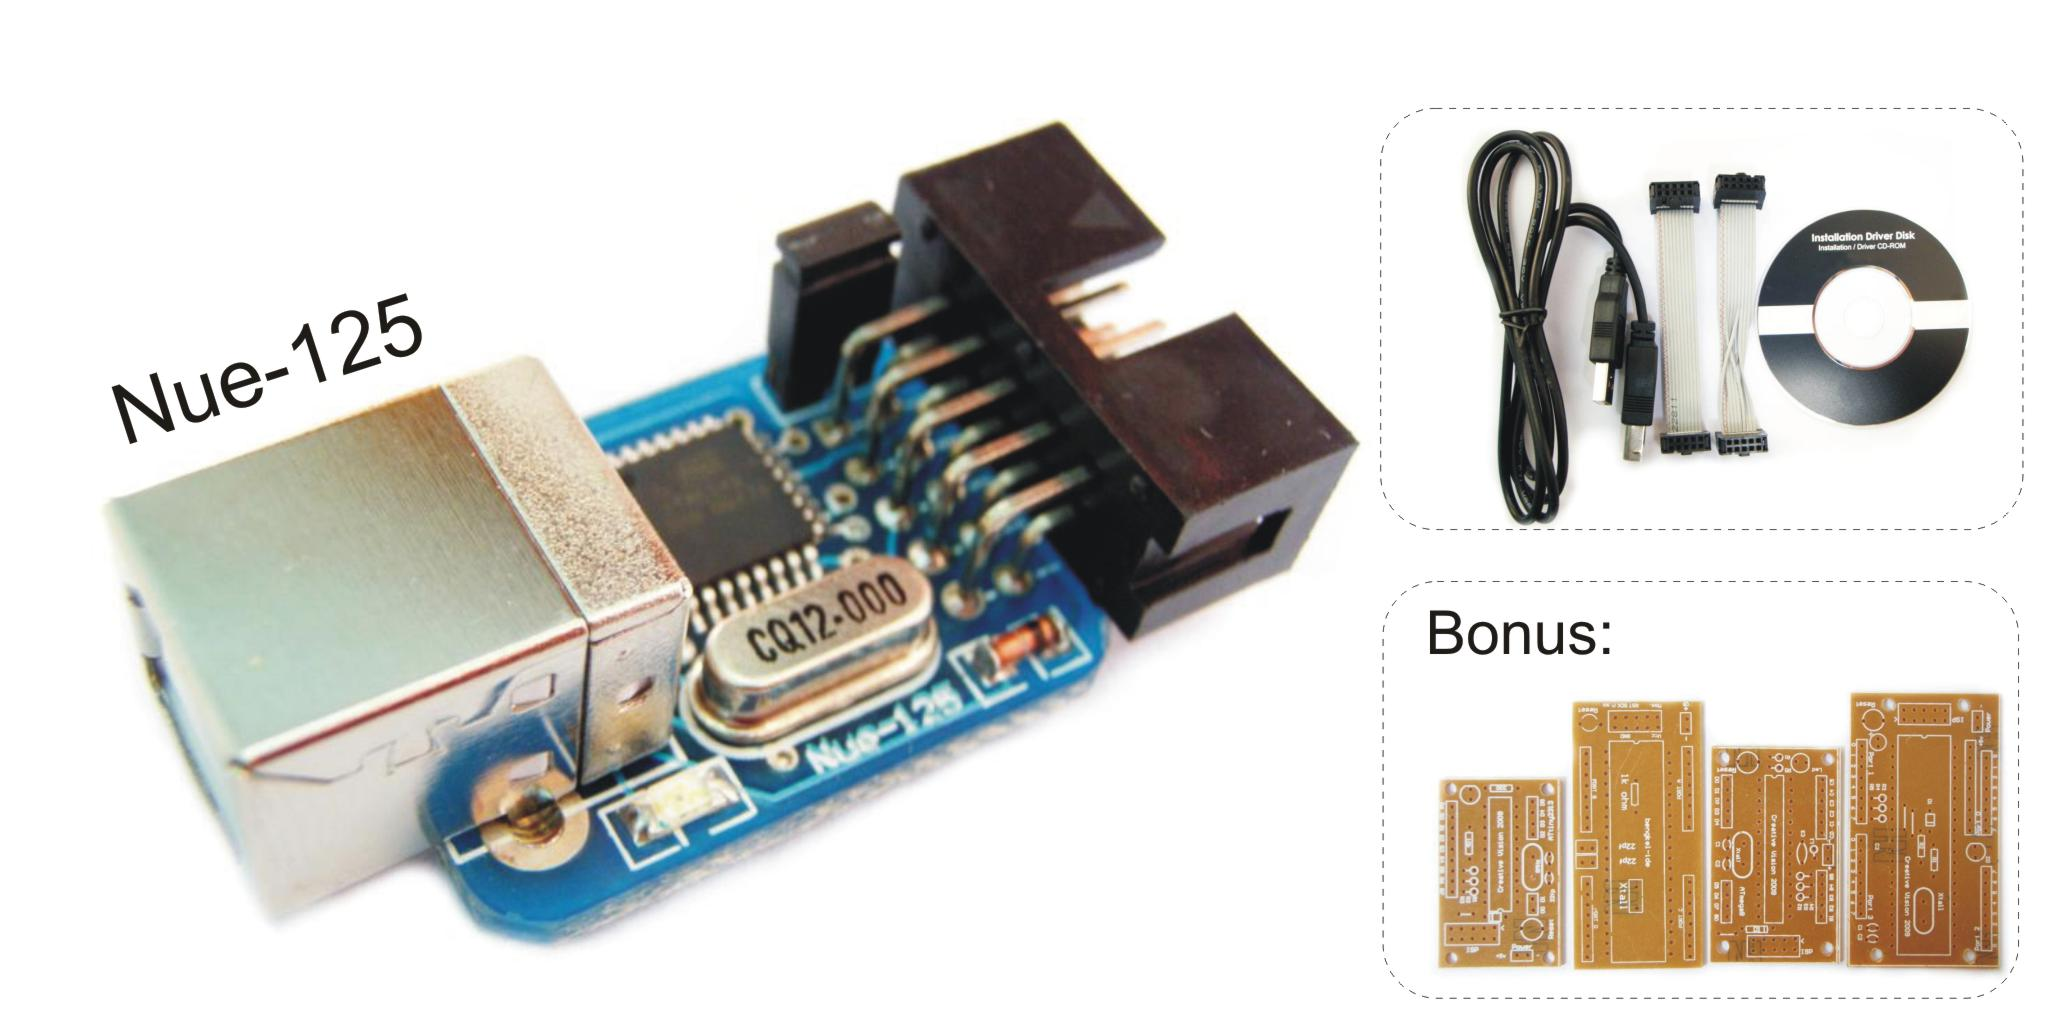 This device will help you in programming AVR microcontroler as easy as